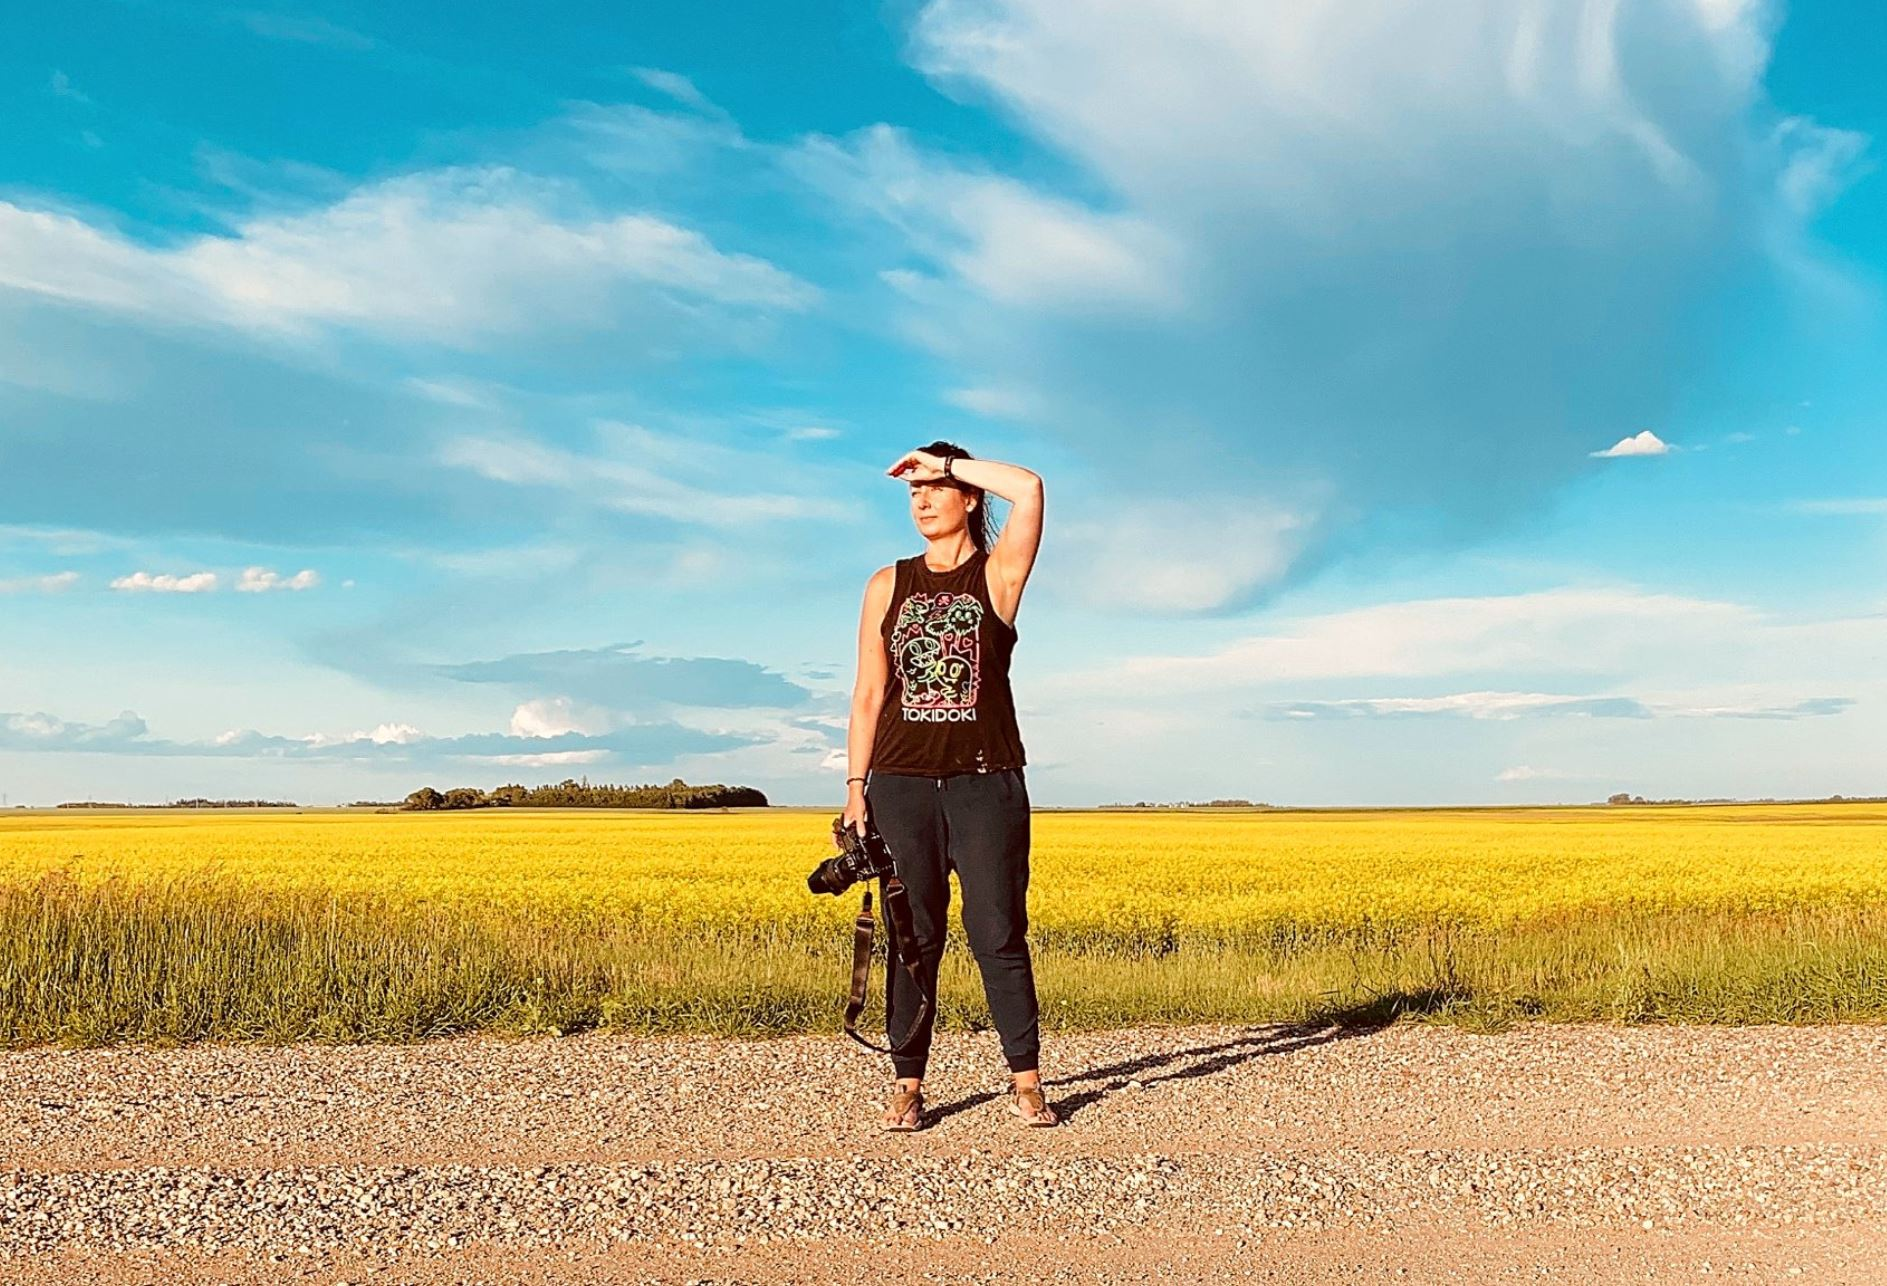 canadian artist brandy saturley taking photos in Brandon, Manitoba